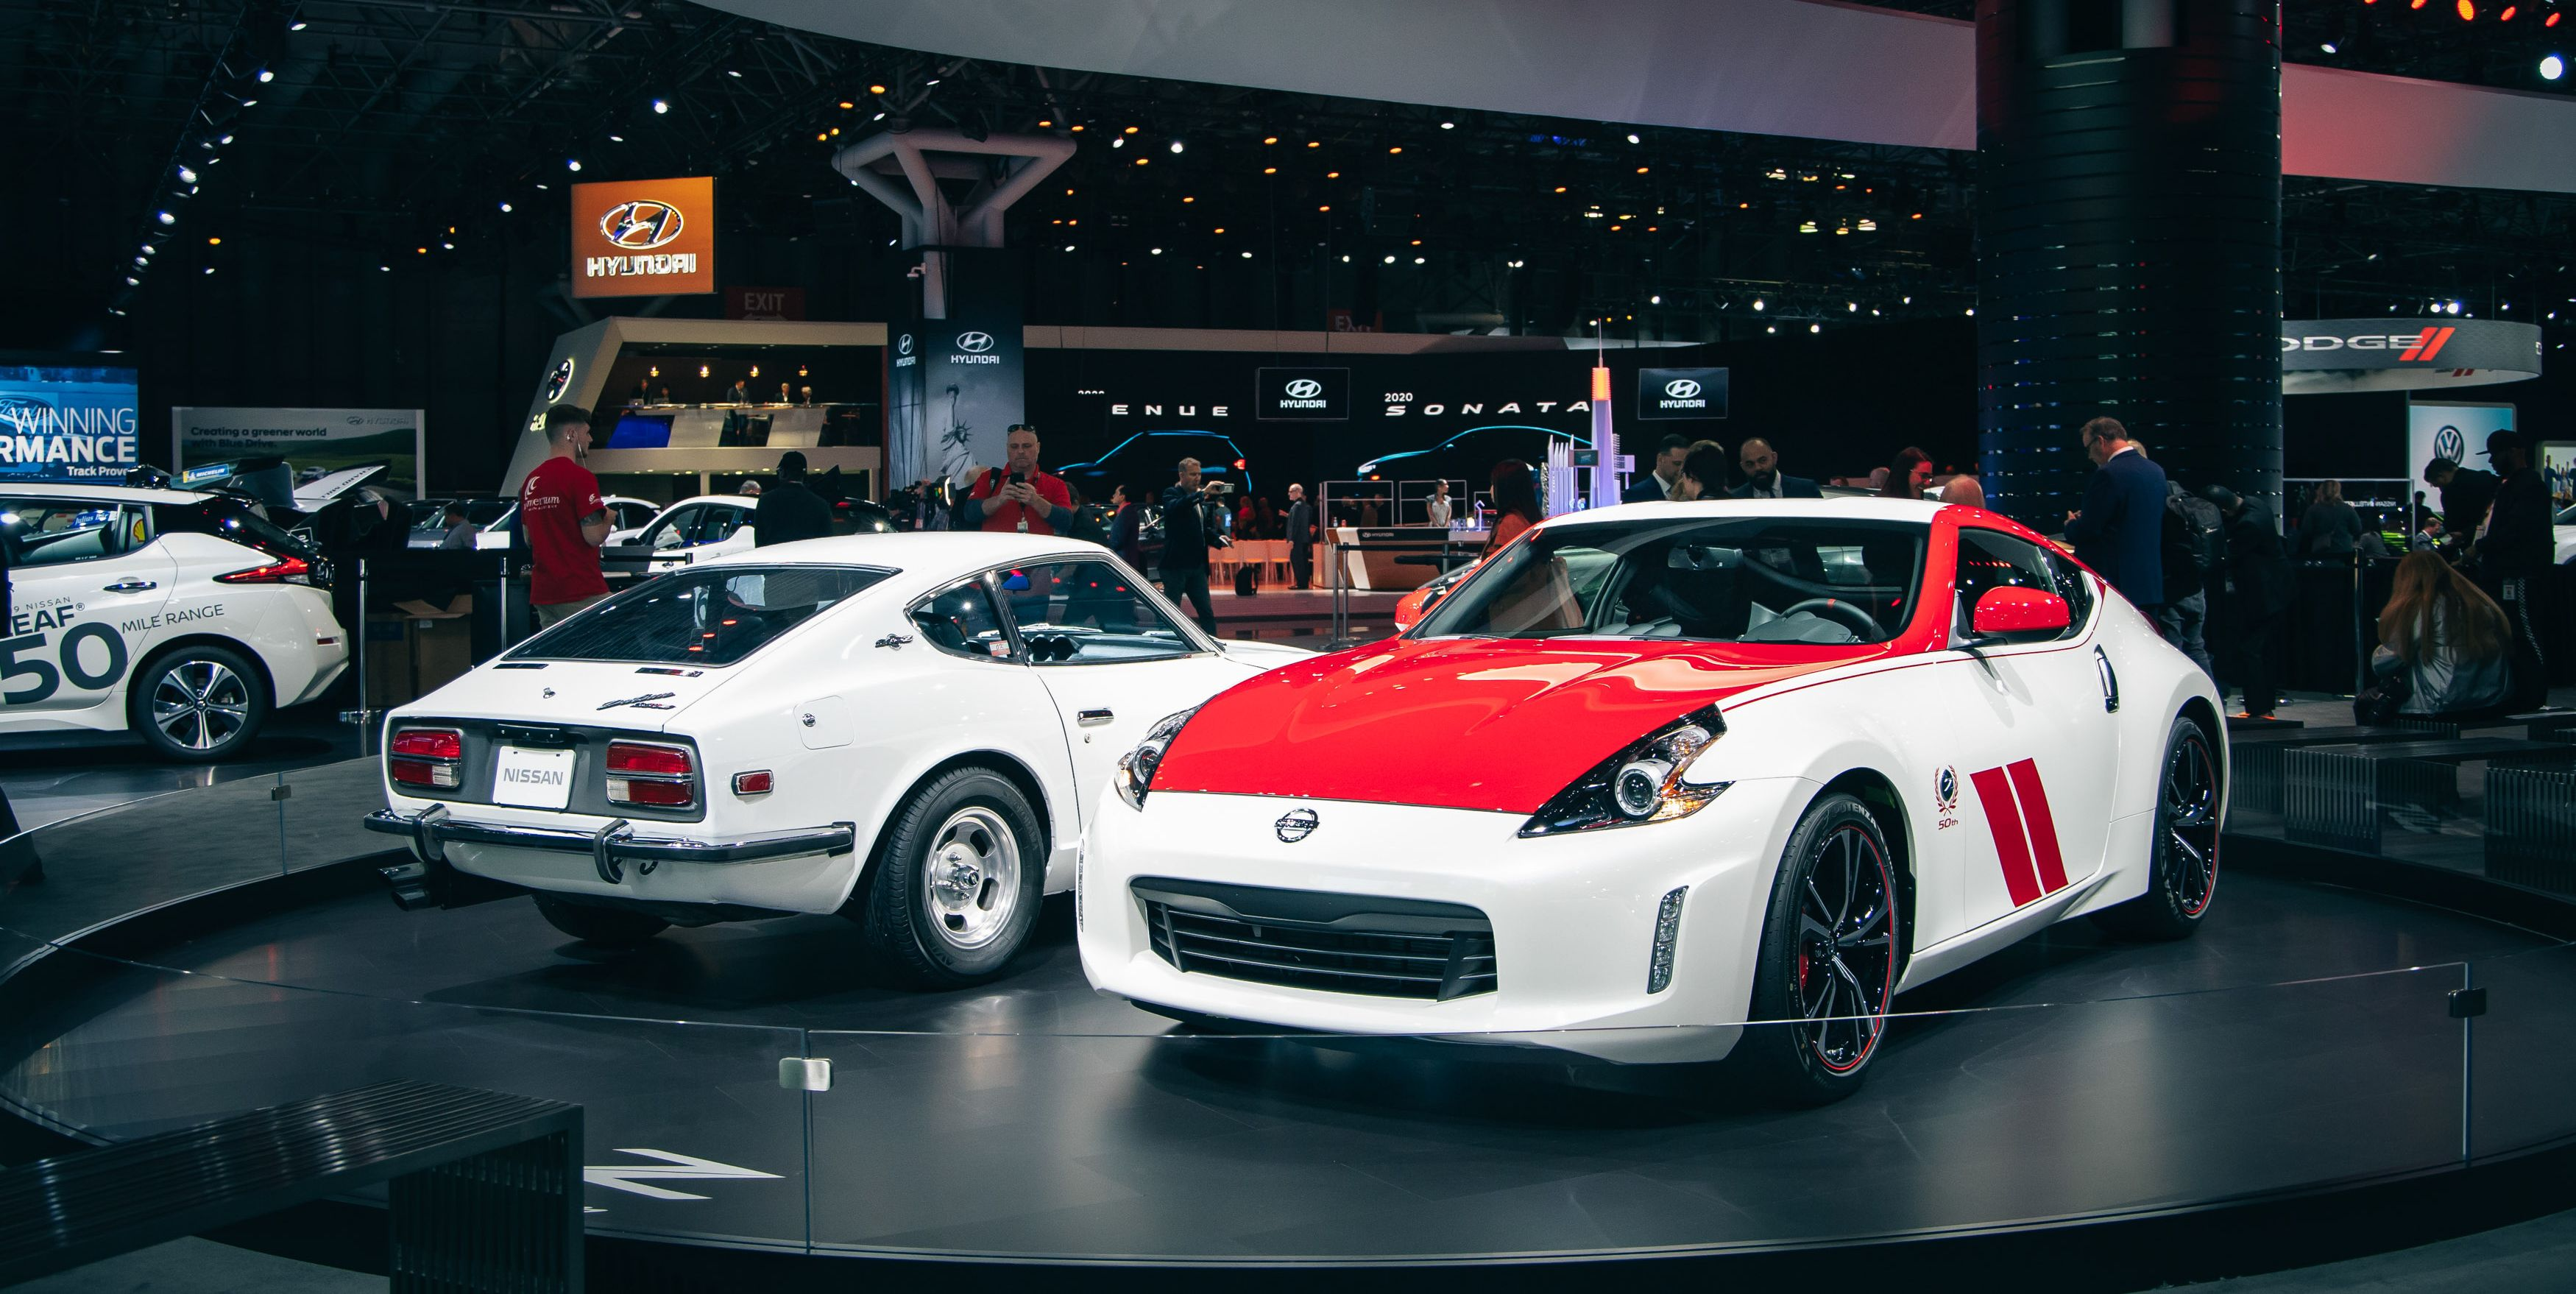 The 2020 Nissan 370Z Commemorates 50 Years with a $2600 Special Anniversary Edition